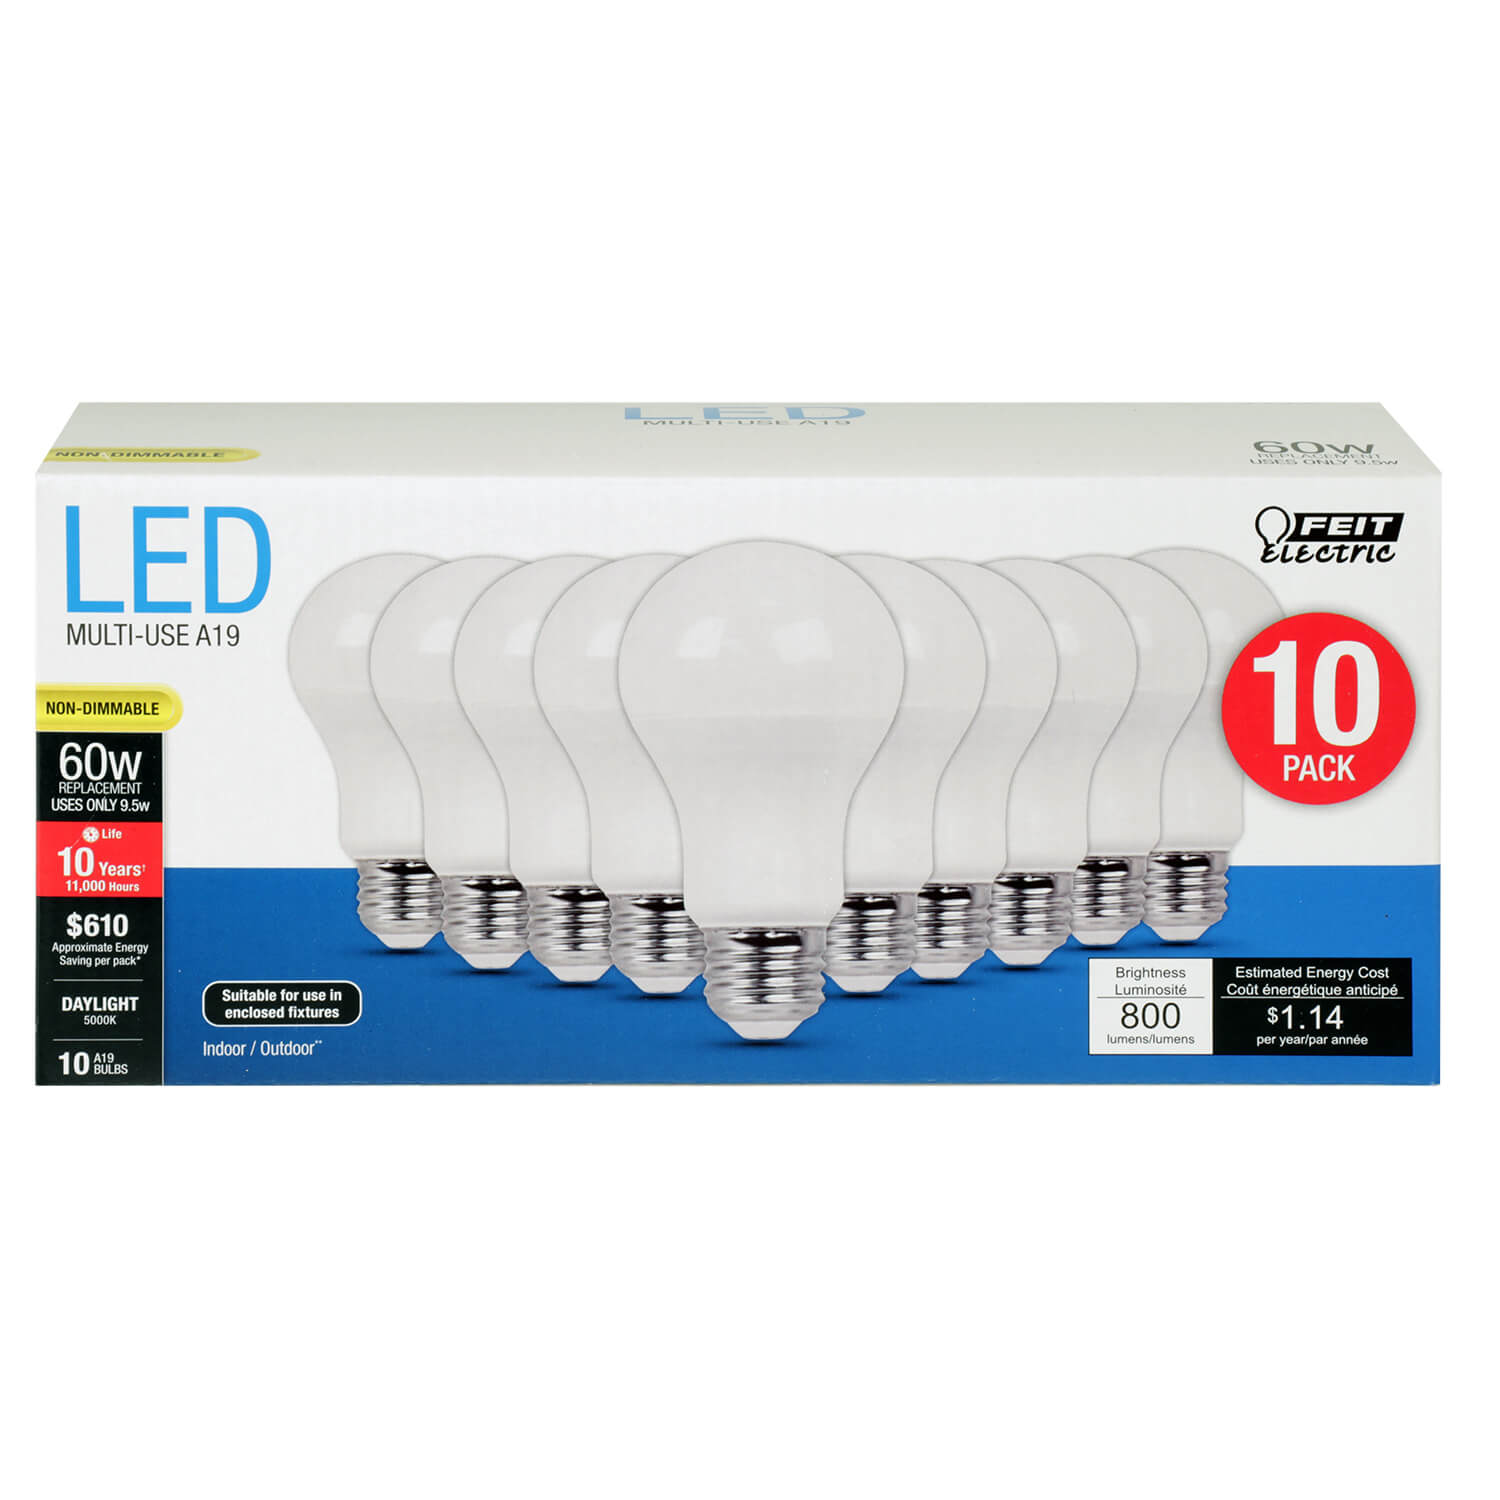 Led Shop Lights Causing Radio Interference: A800/850/10KLED/10 800-lumen-5000k-non-dimmable-led